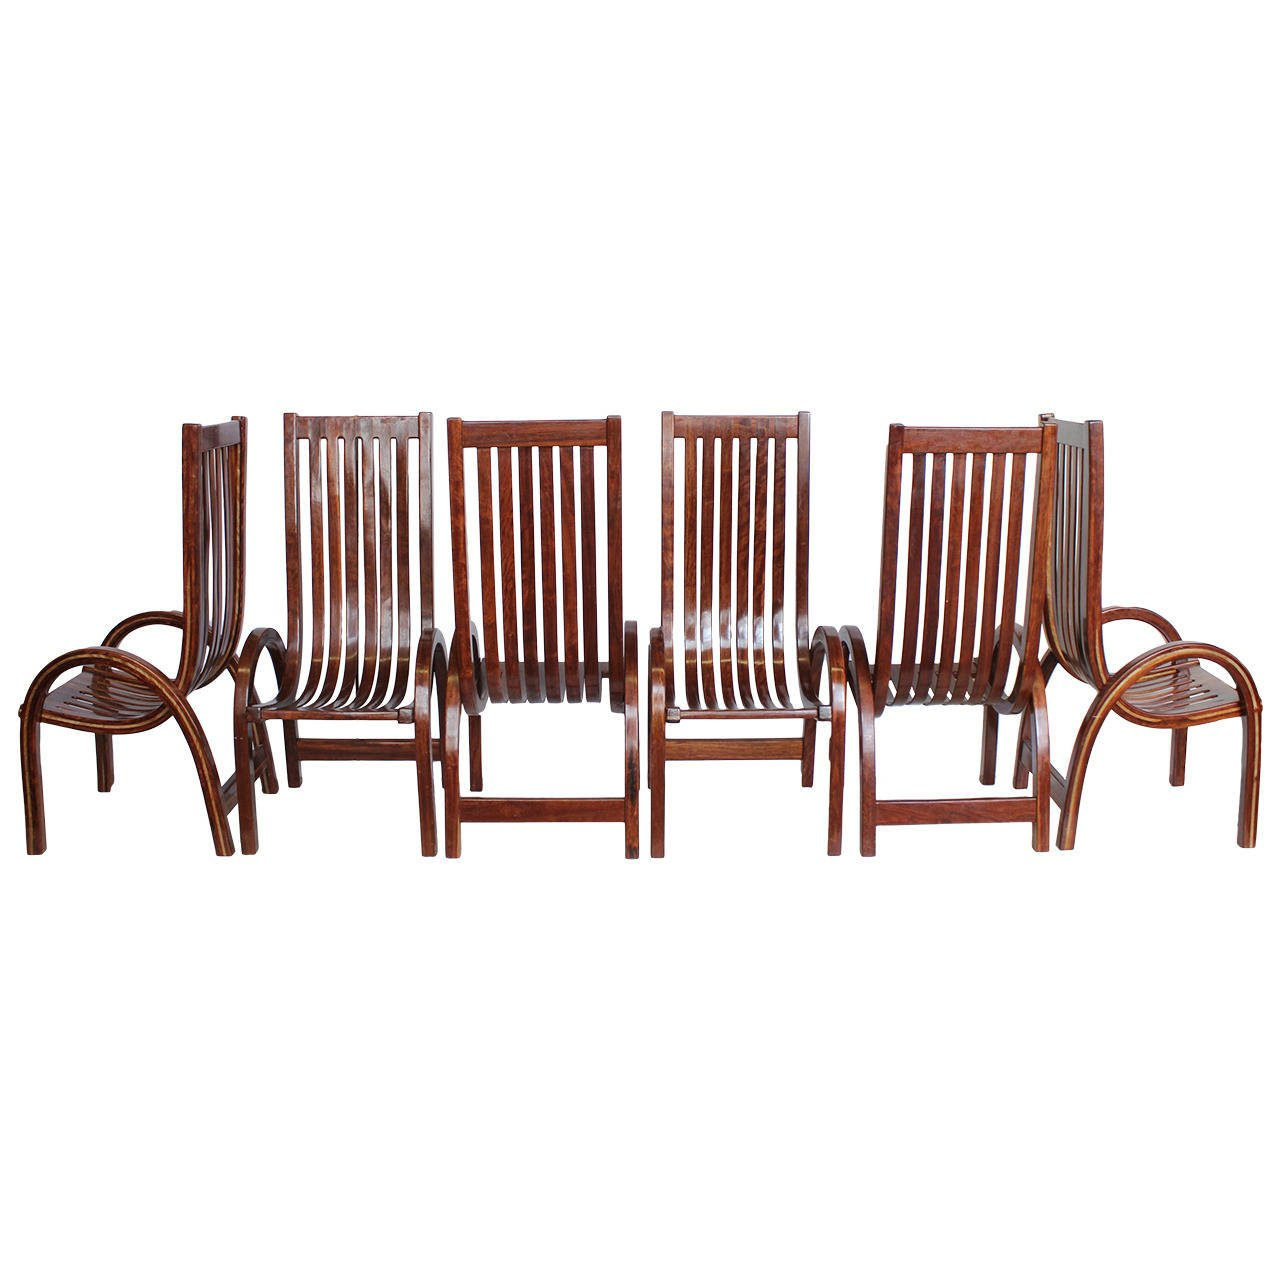 modern bentwood chairs - gosia@architecturalanarchy.com.jpeg